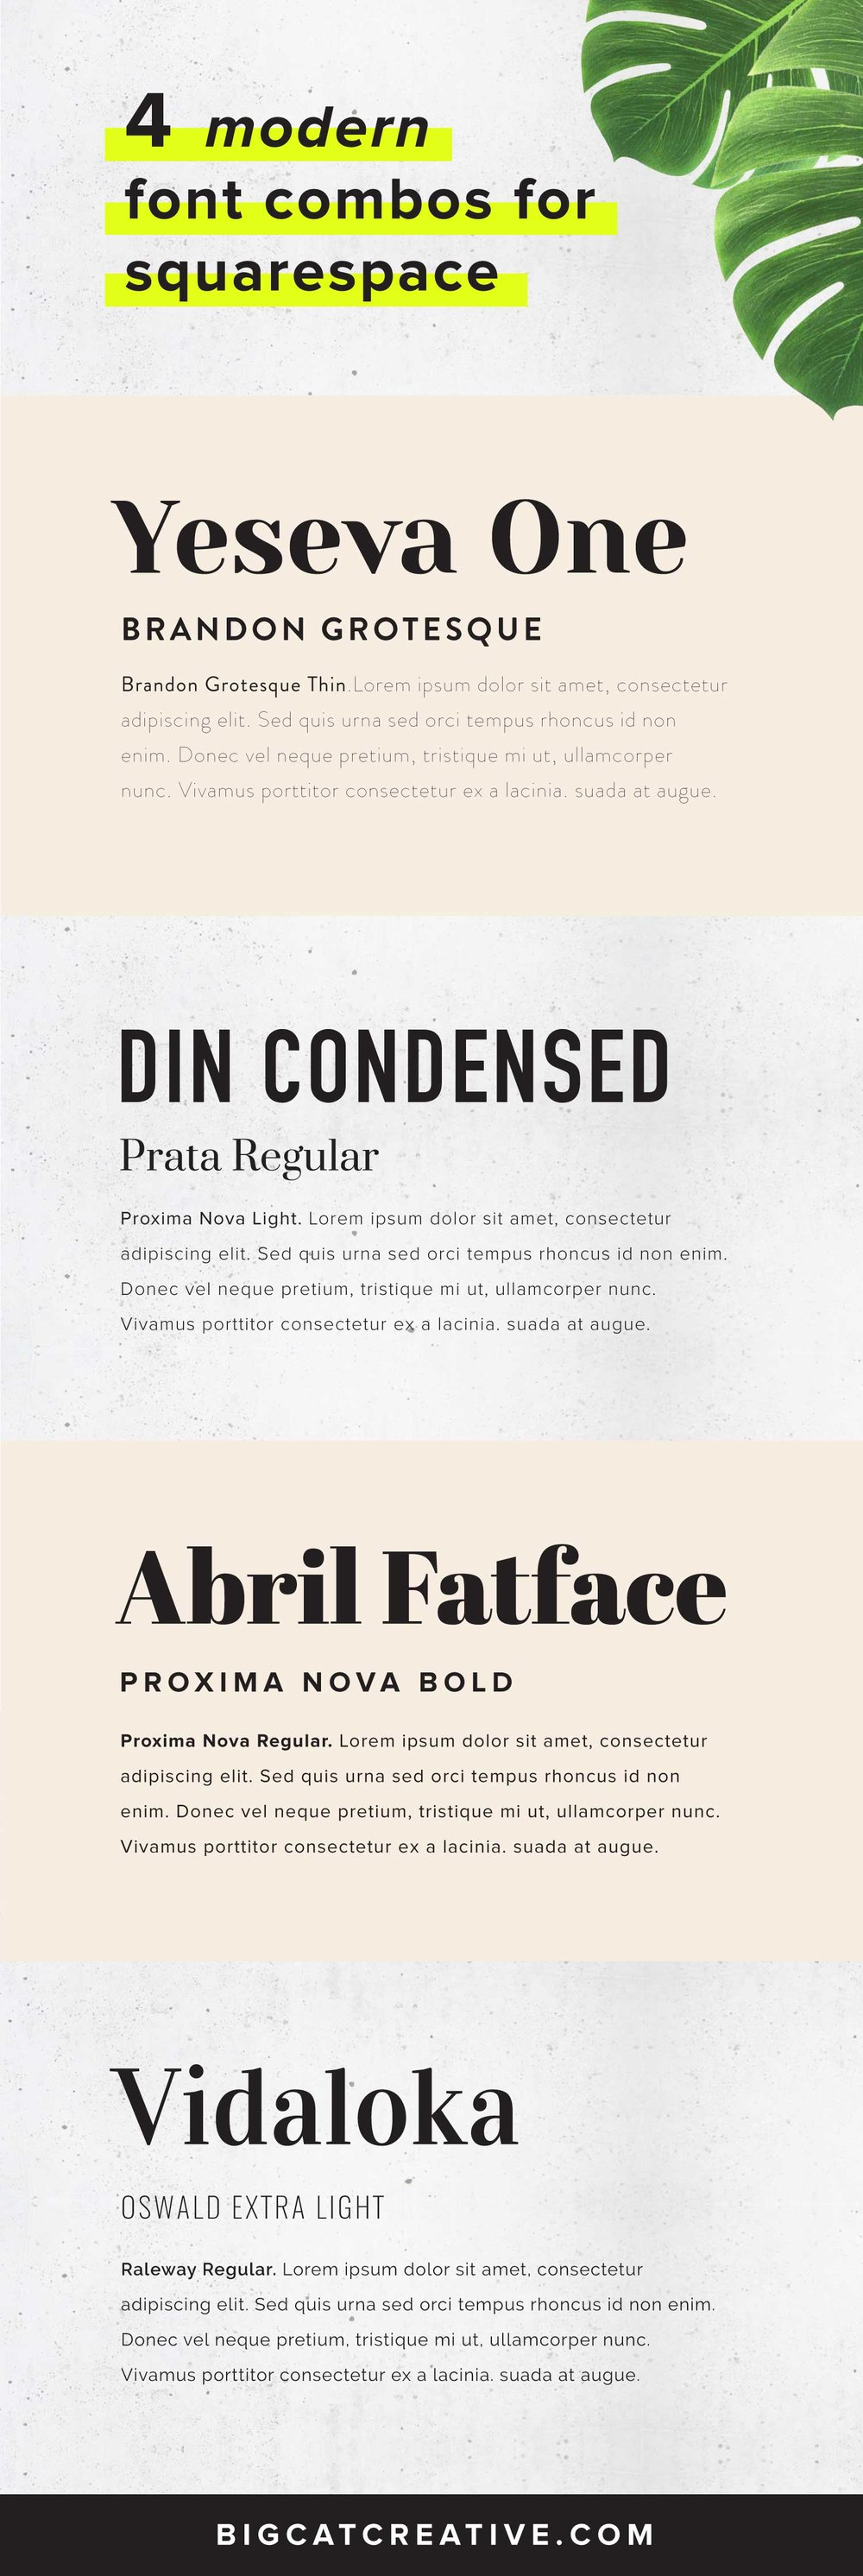 Best High End and Modern Font Combinations for Squarespace